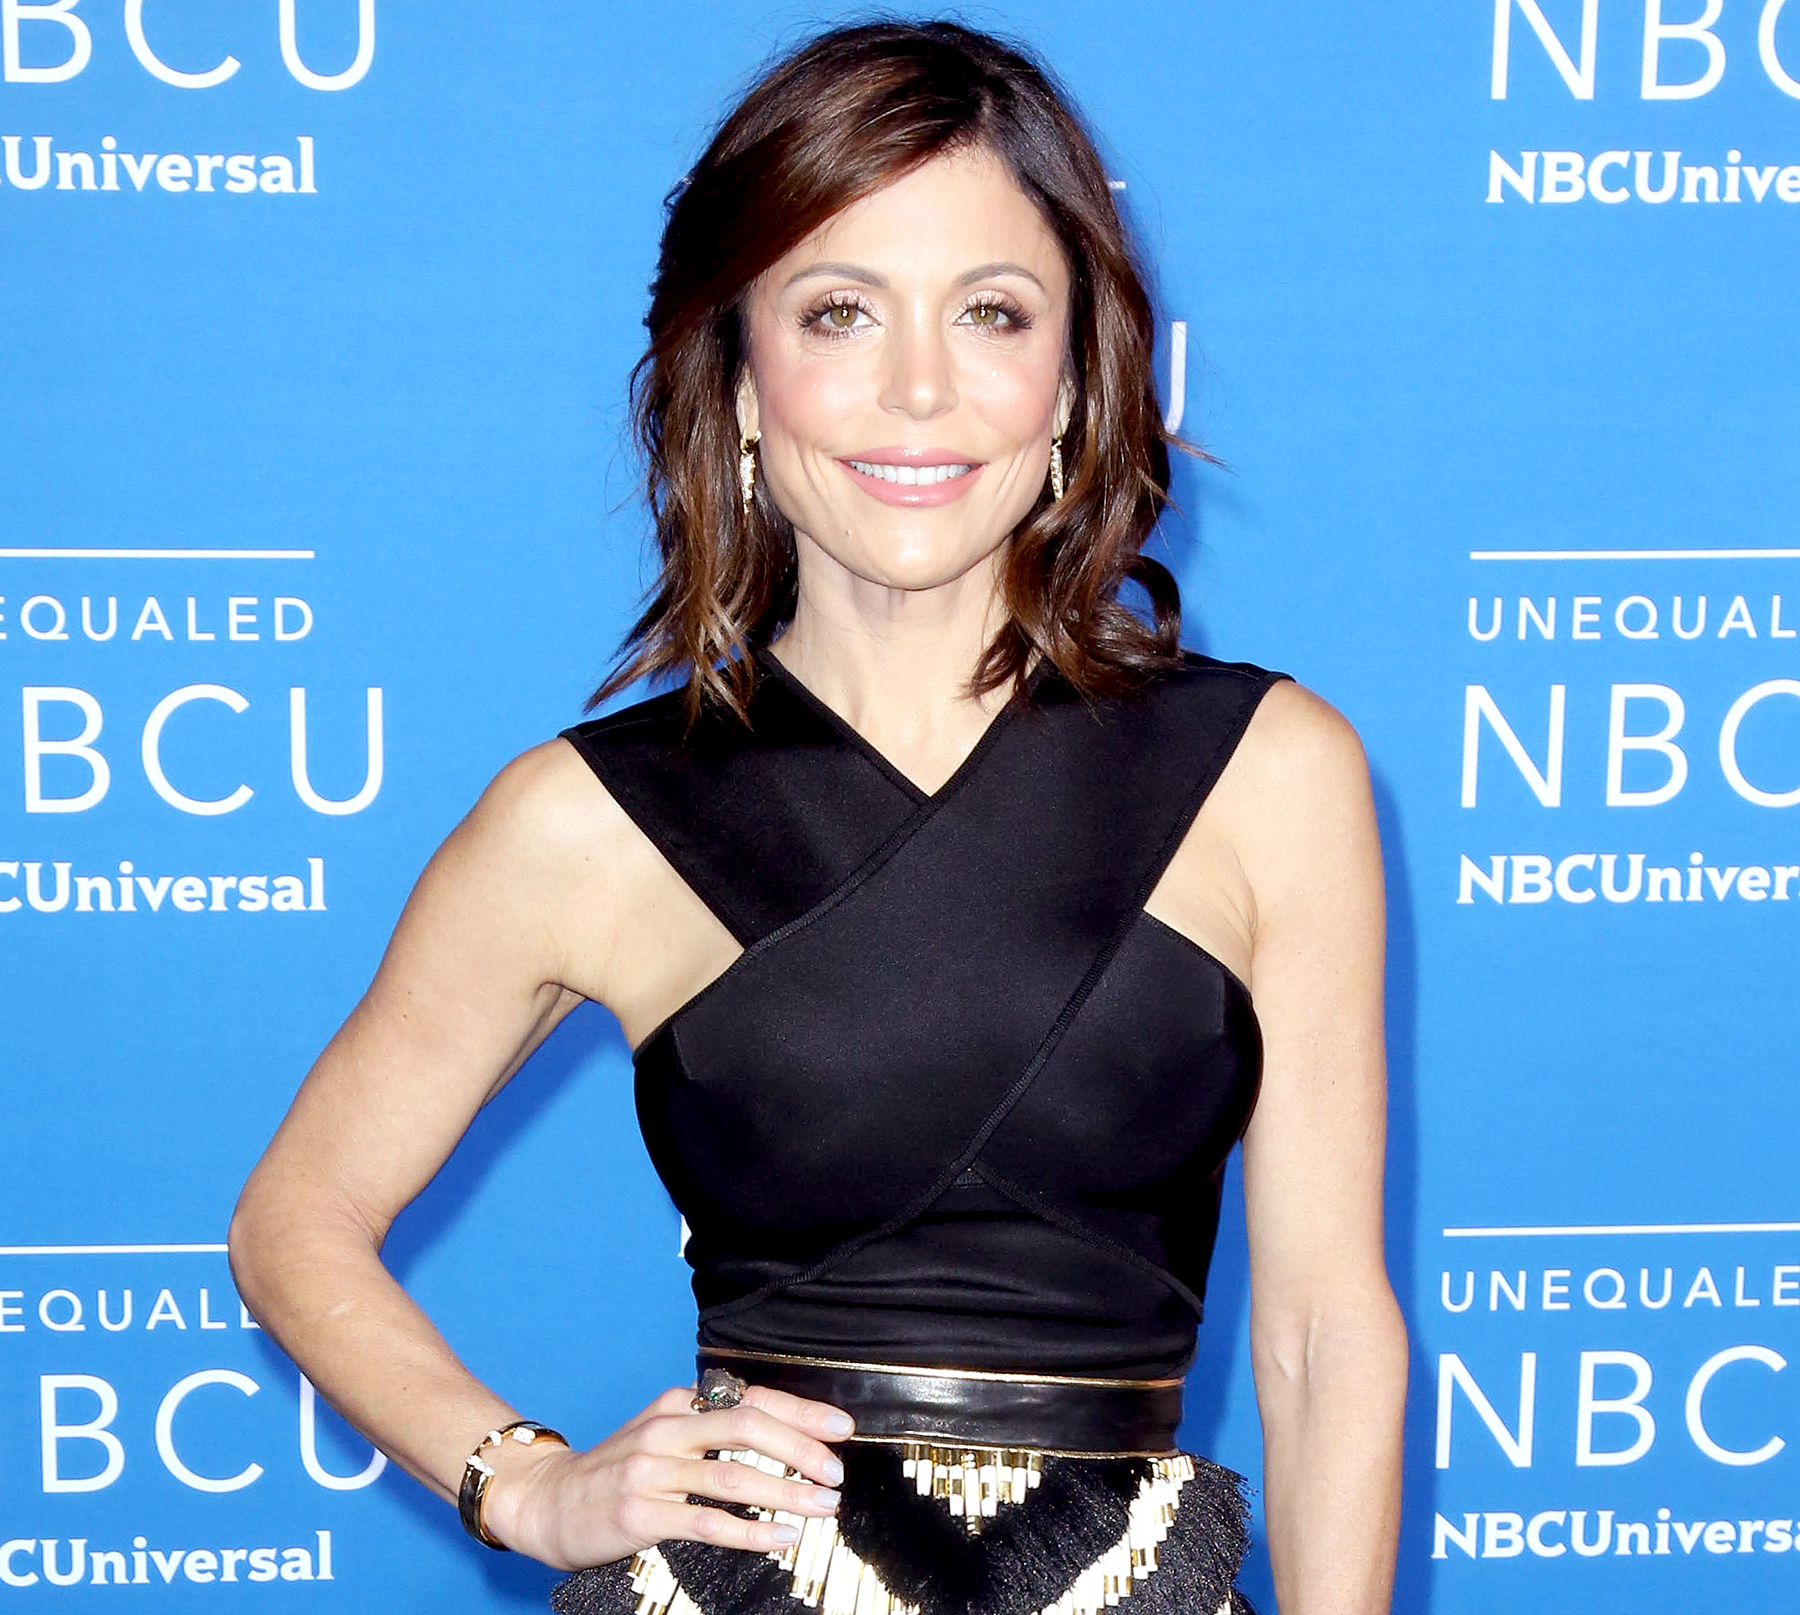 Bethenny Frankel attends the 2017 NBCUniversal Upfront Red Carpet in New York City.